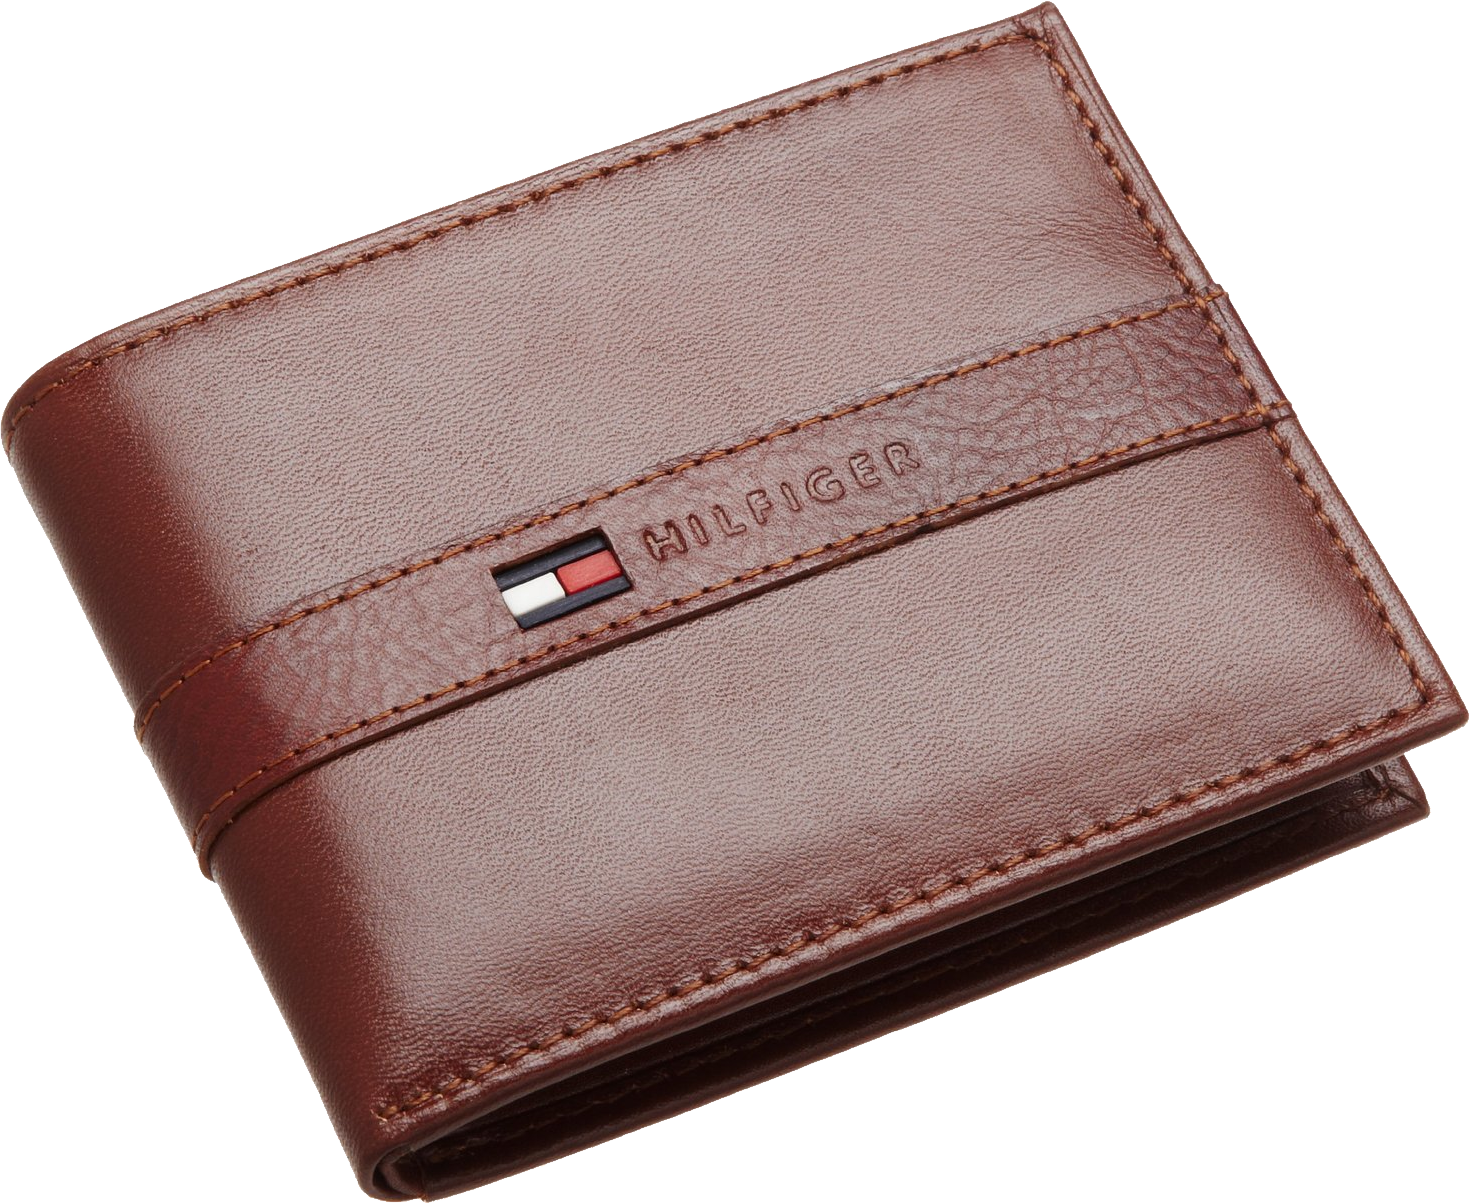 Wallet clipart gents. Wallets png images free